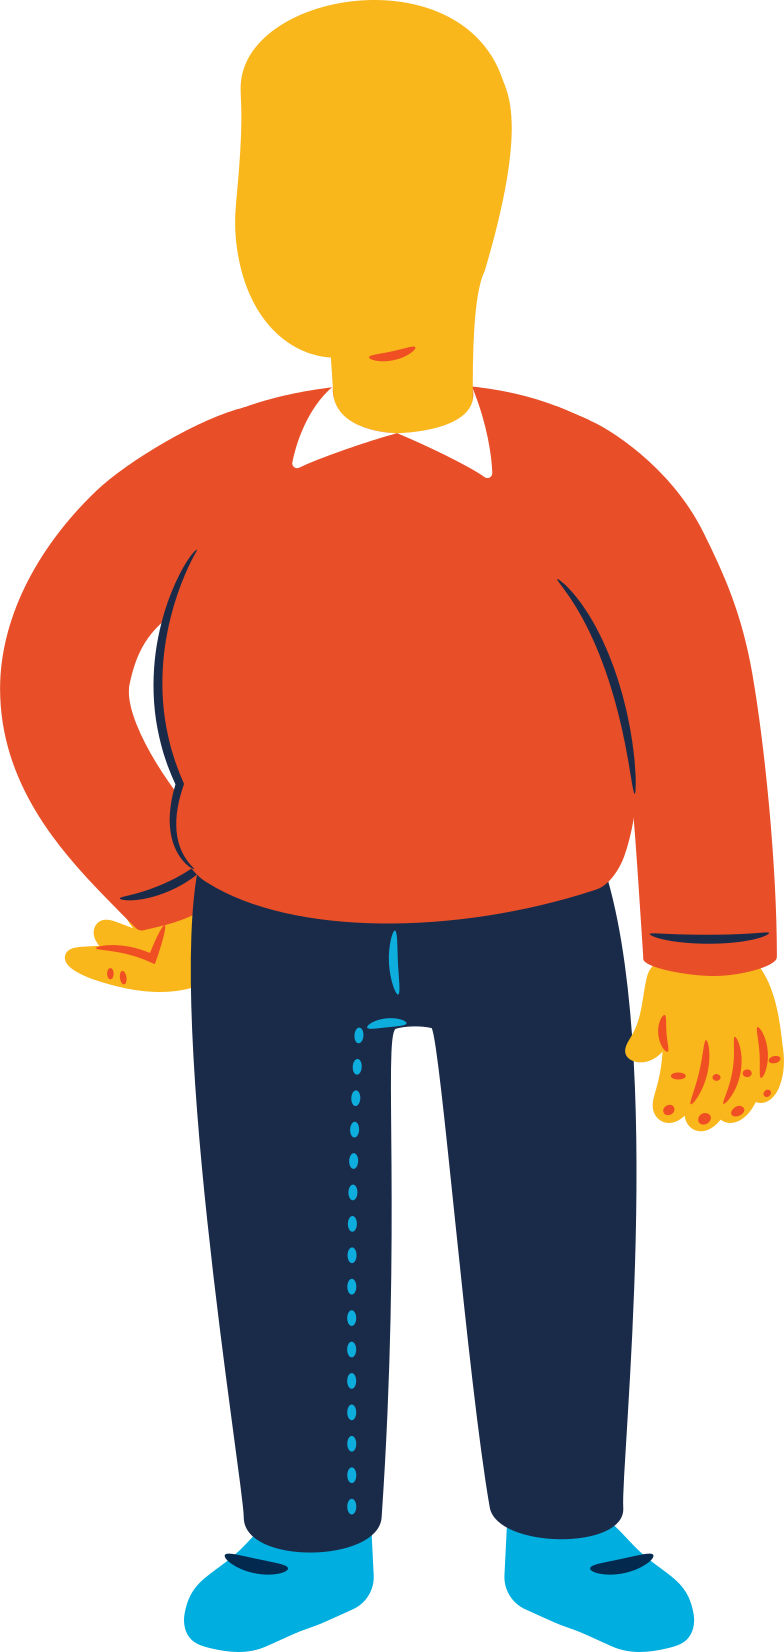 chubby man standing Clipart illustration in PNG, SVG